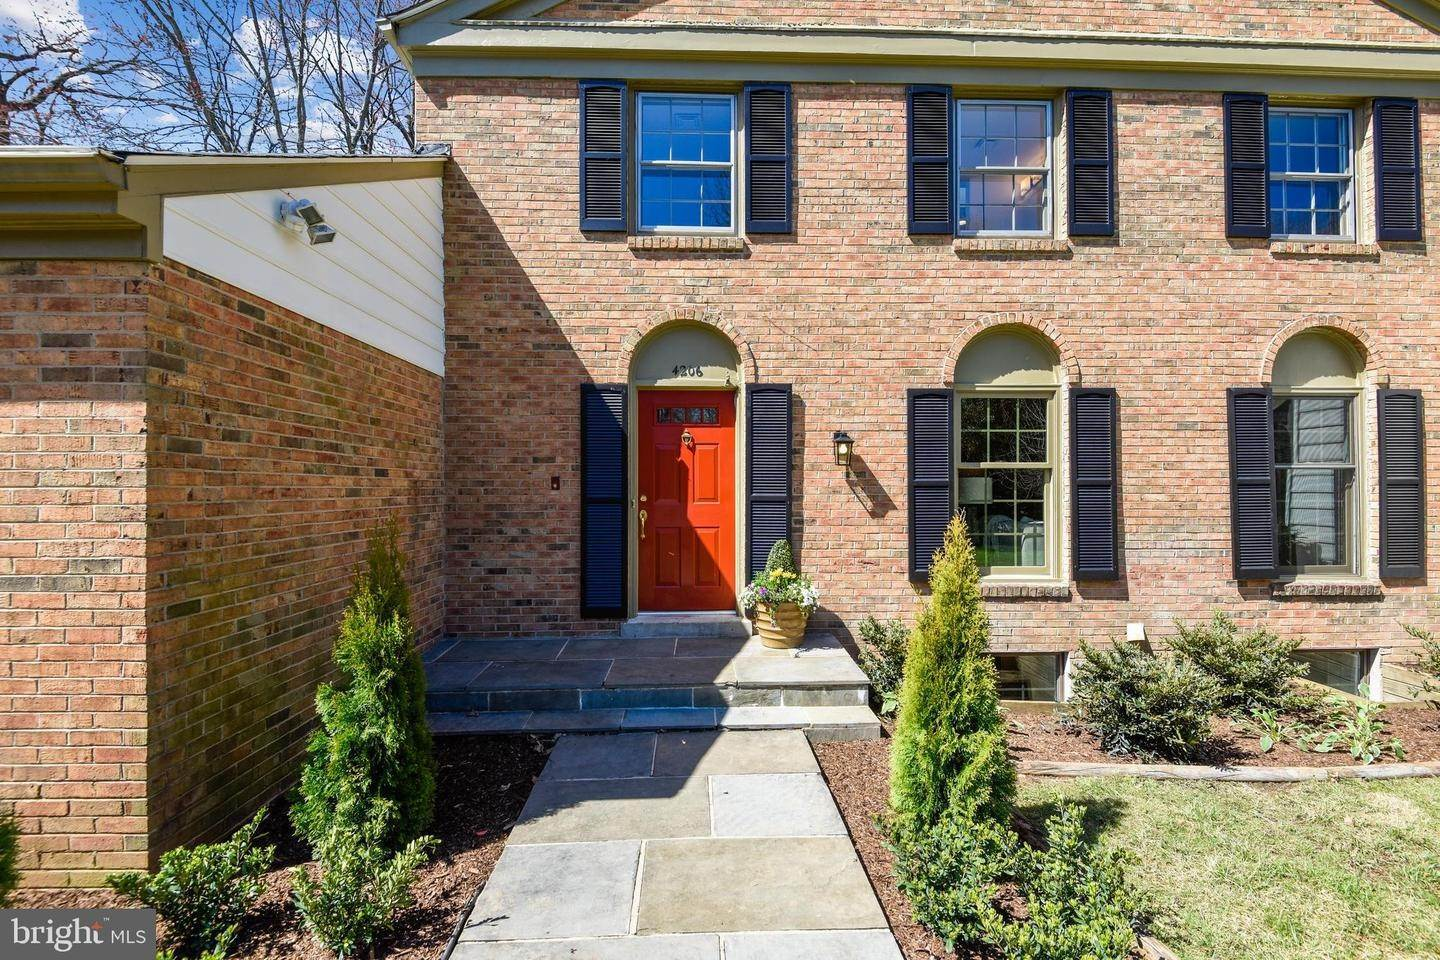 2. Single Family Homes à Alexandria, Virginia, 22309 États-Unis